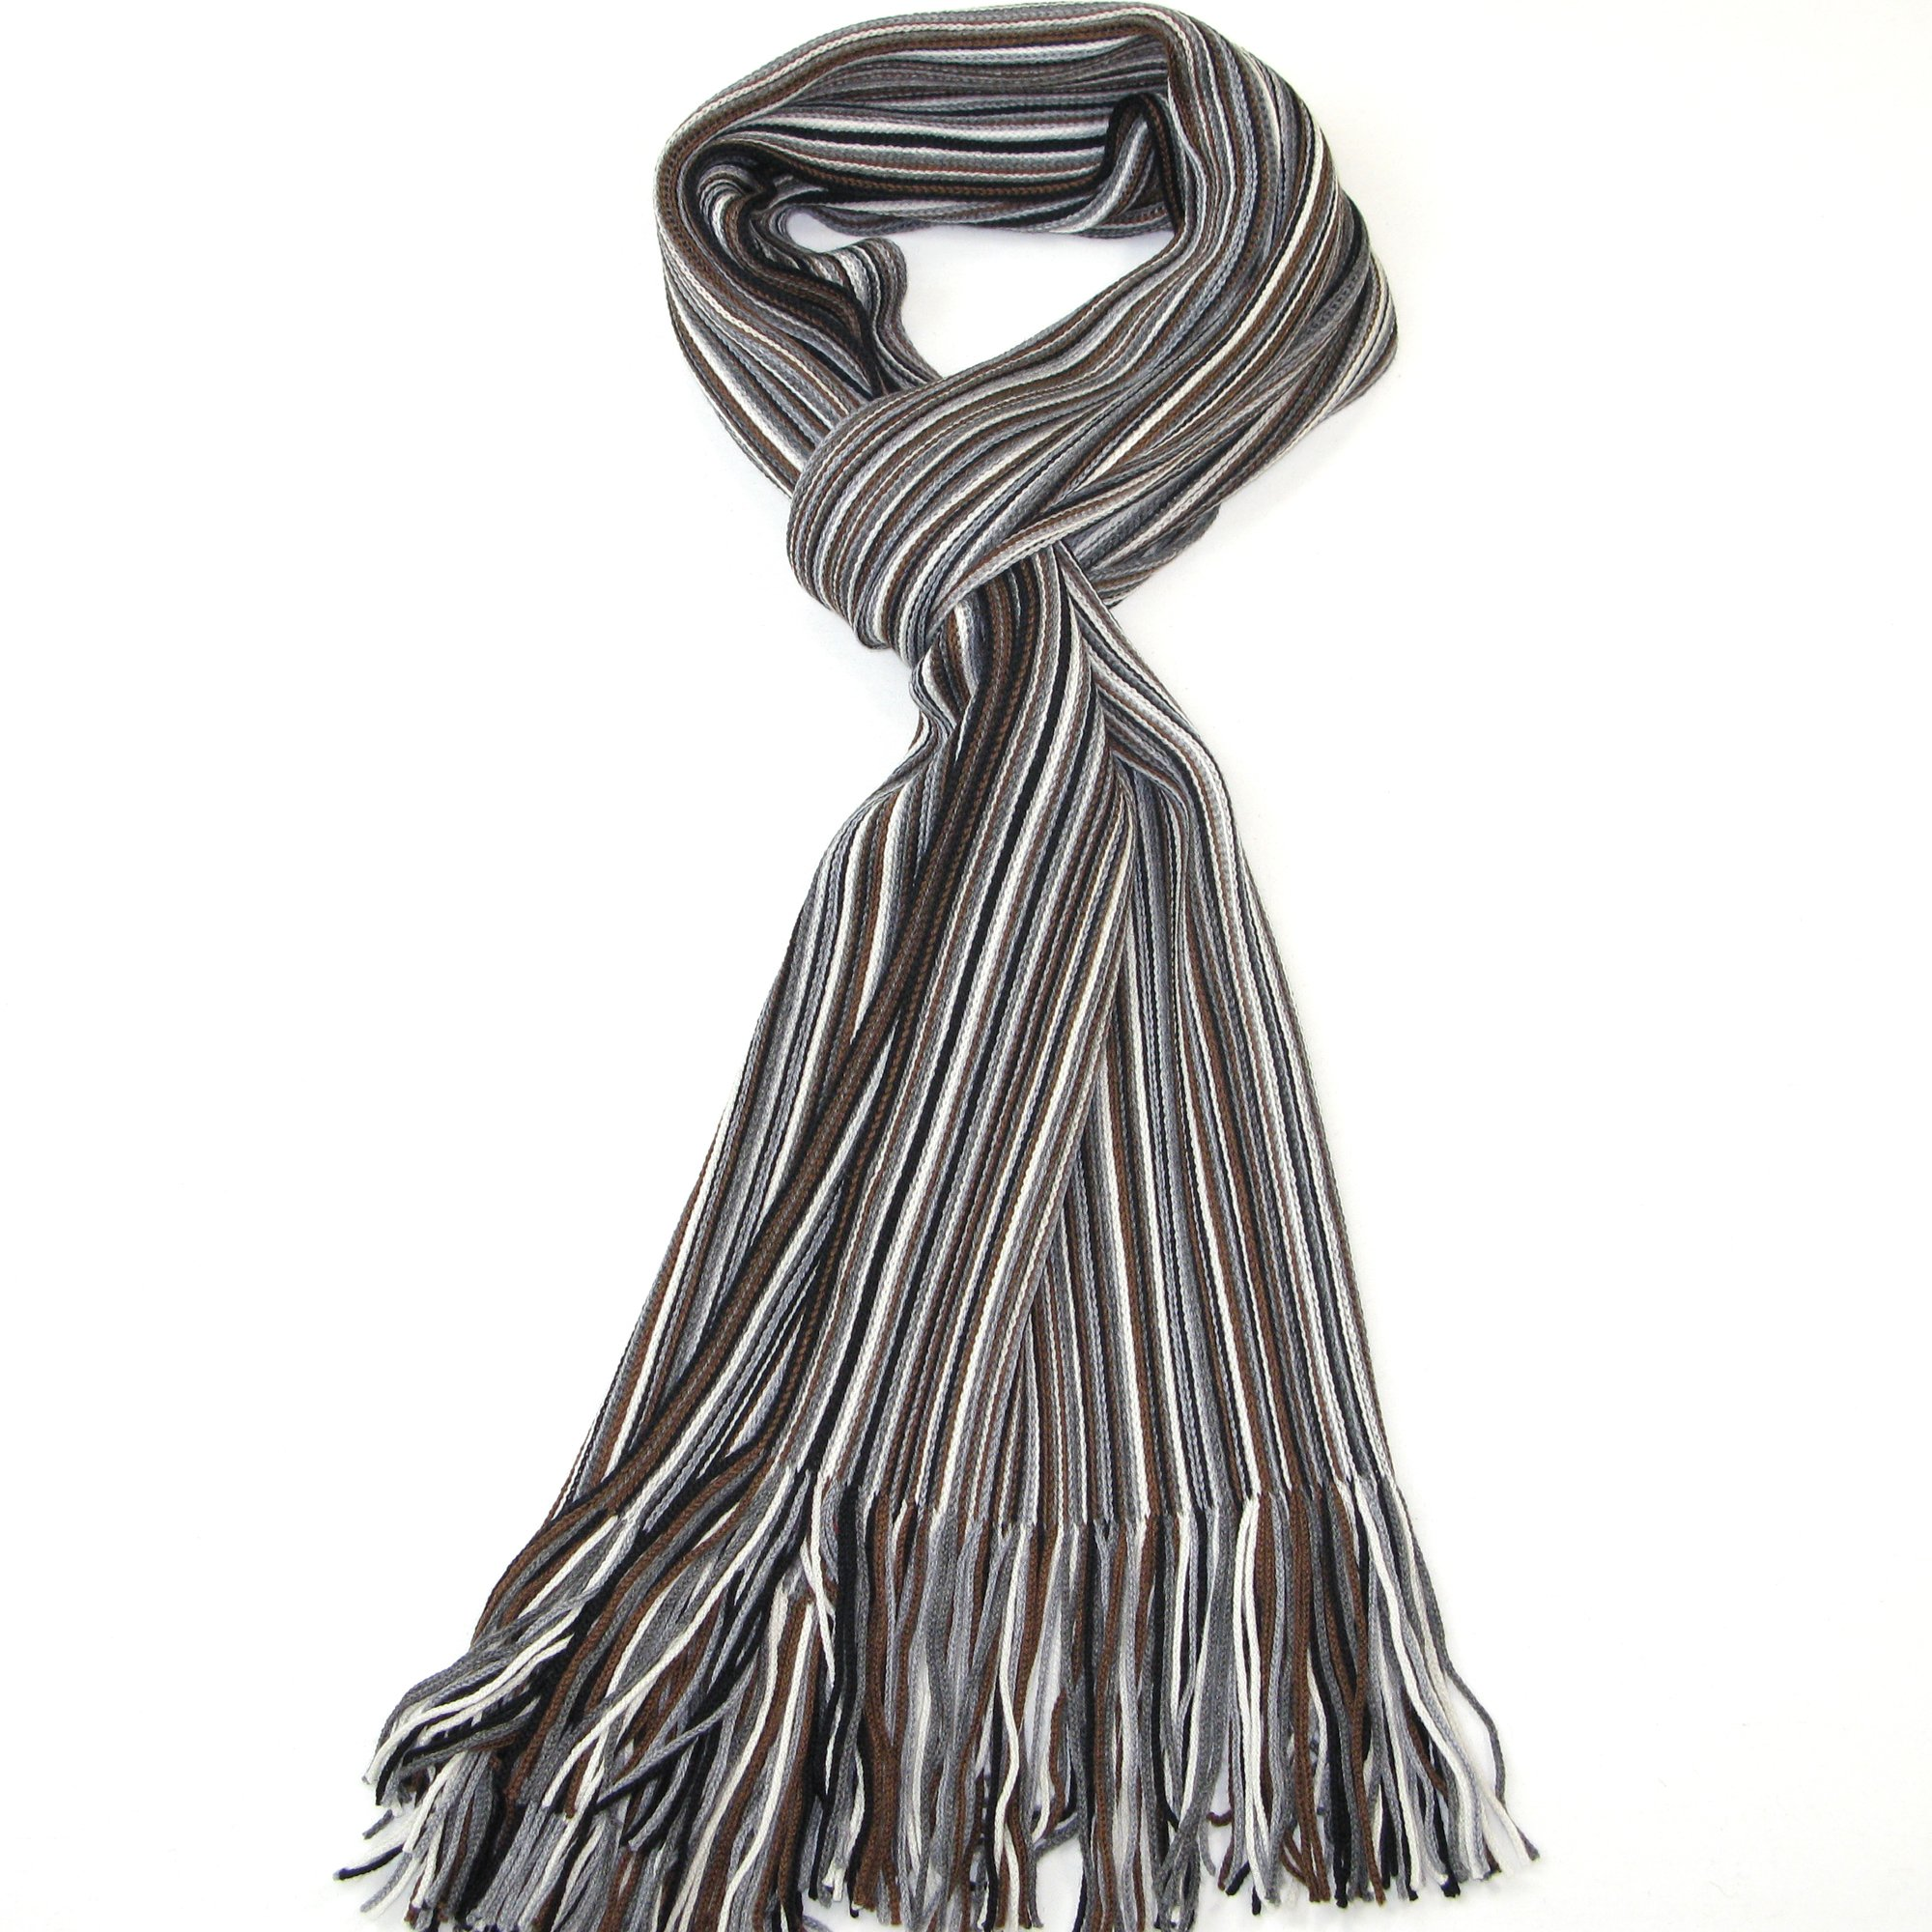 Grey, Brown and Black Men's Scarf - Fine Merino Wool Striped Scarf for Men